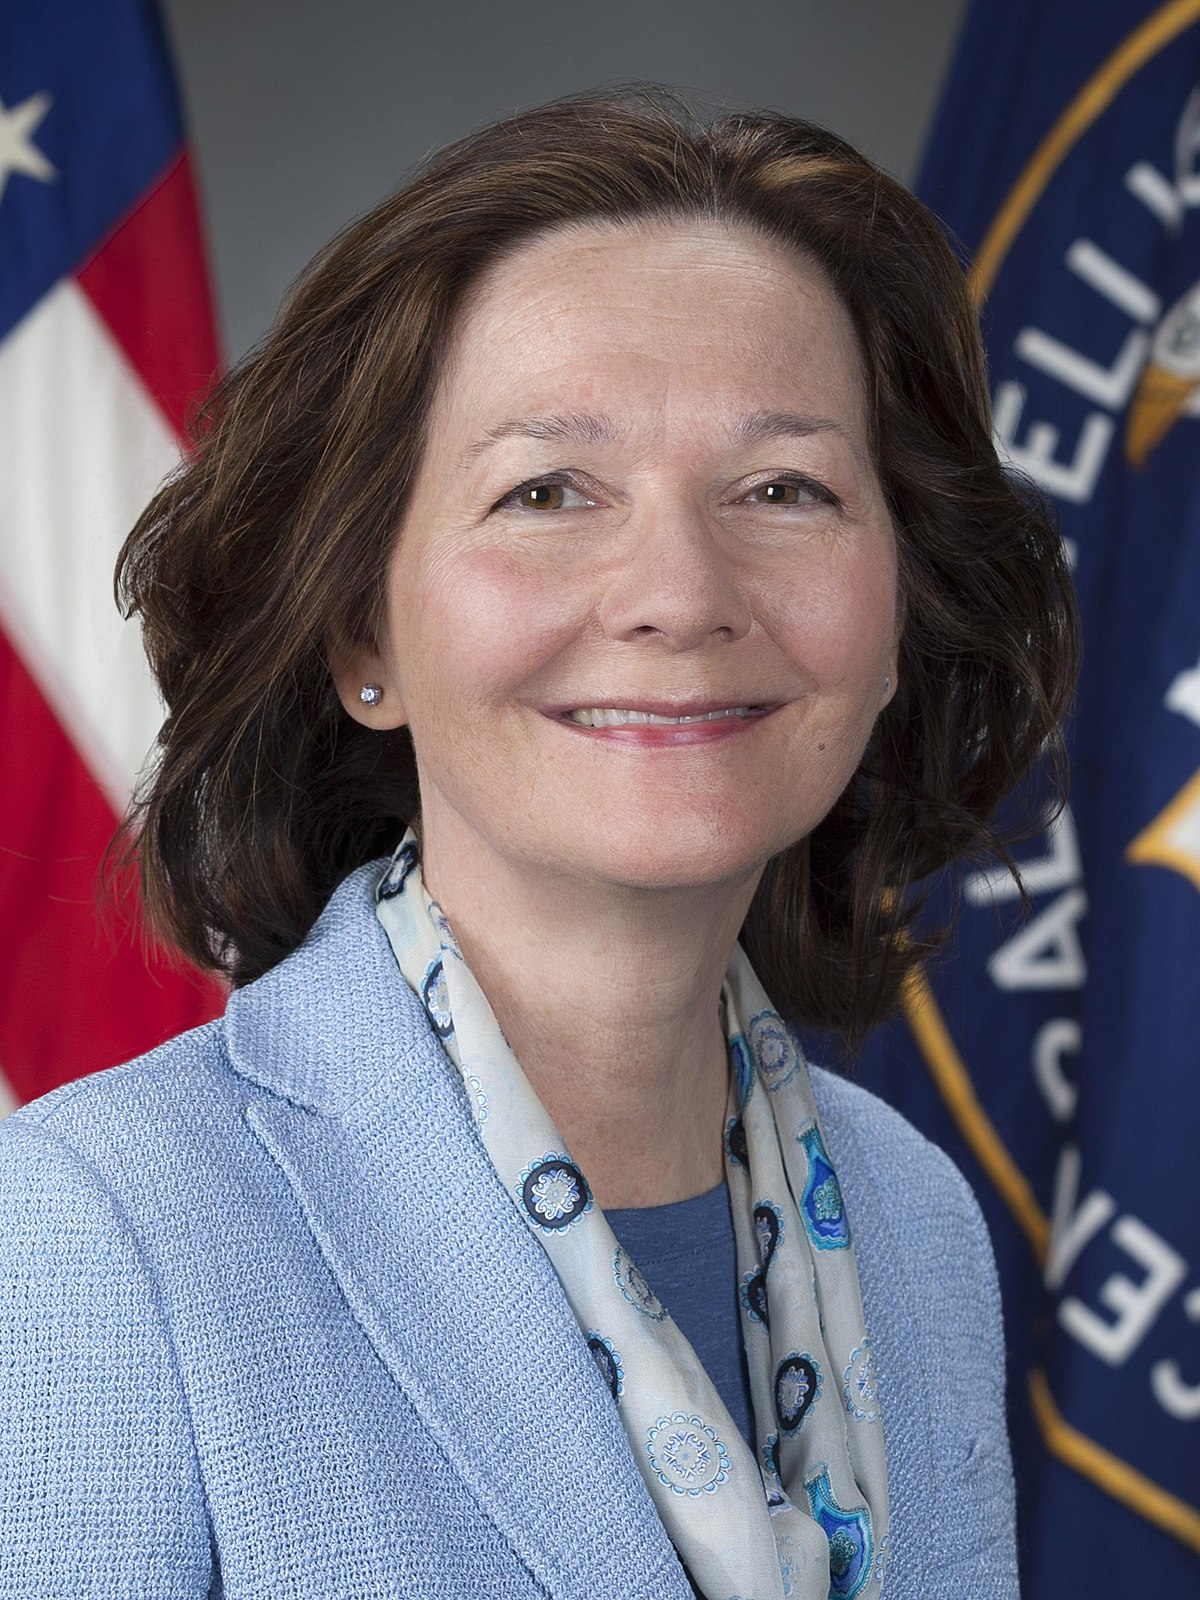 Sean Davis: CIA Director Gina Haspel Banking On Trump Loss To Keep Russiagate Documents Hidden